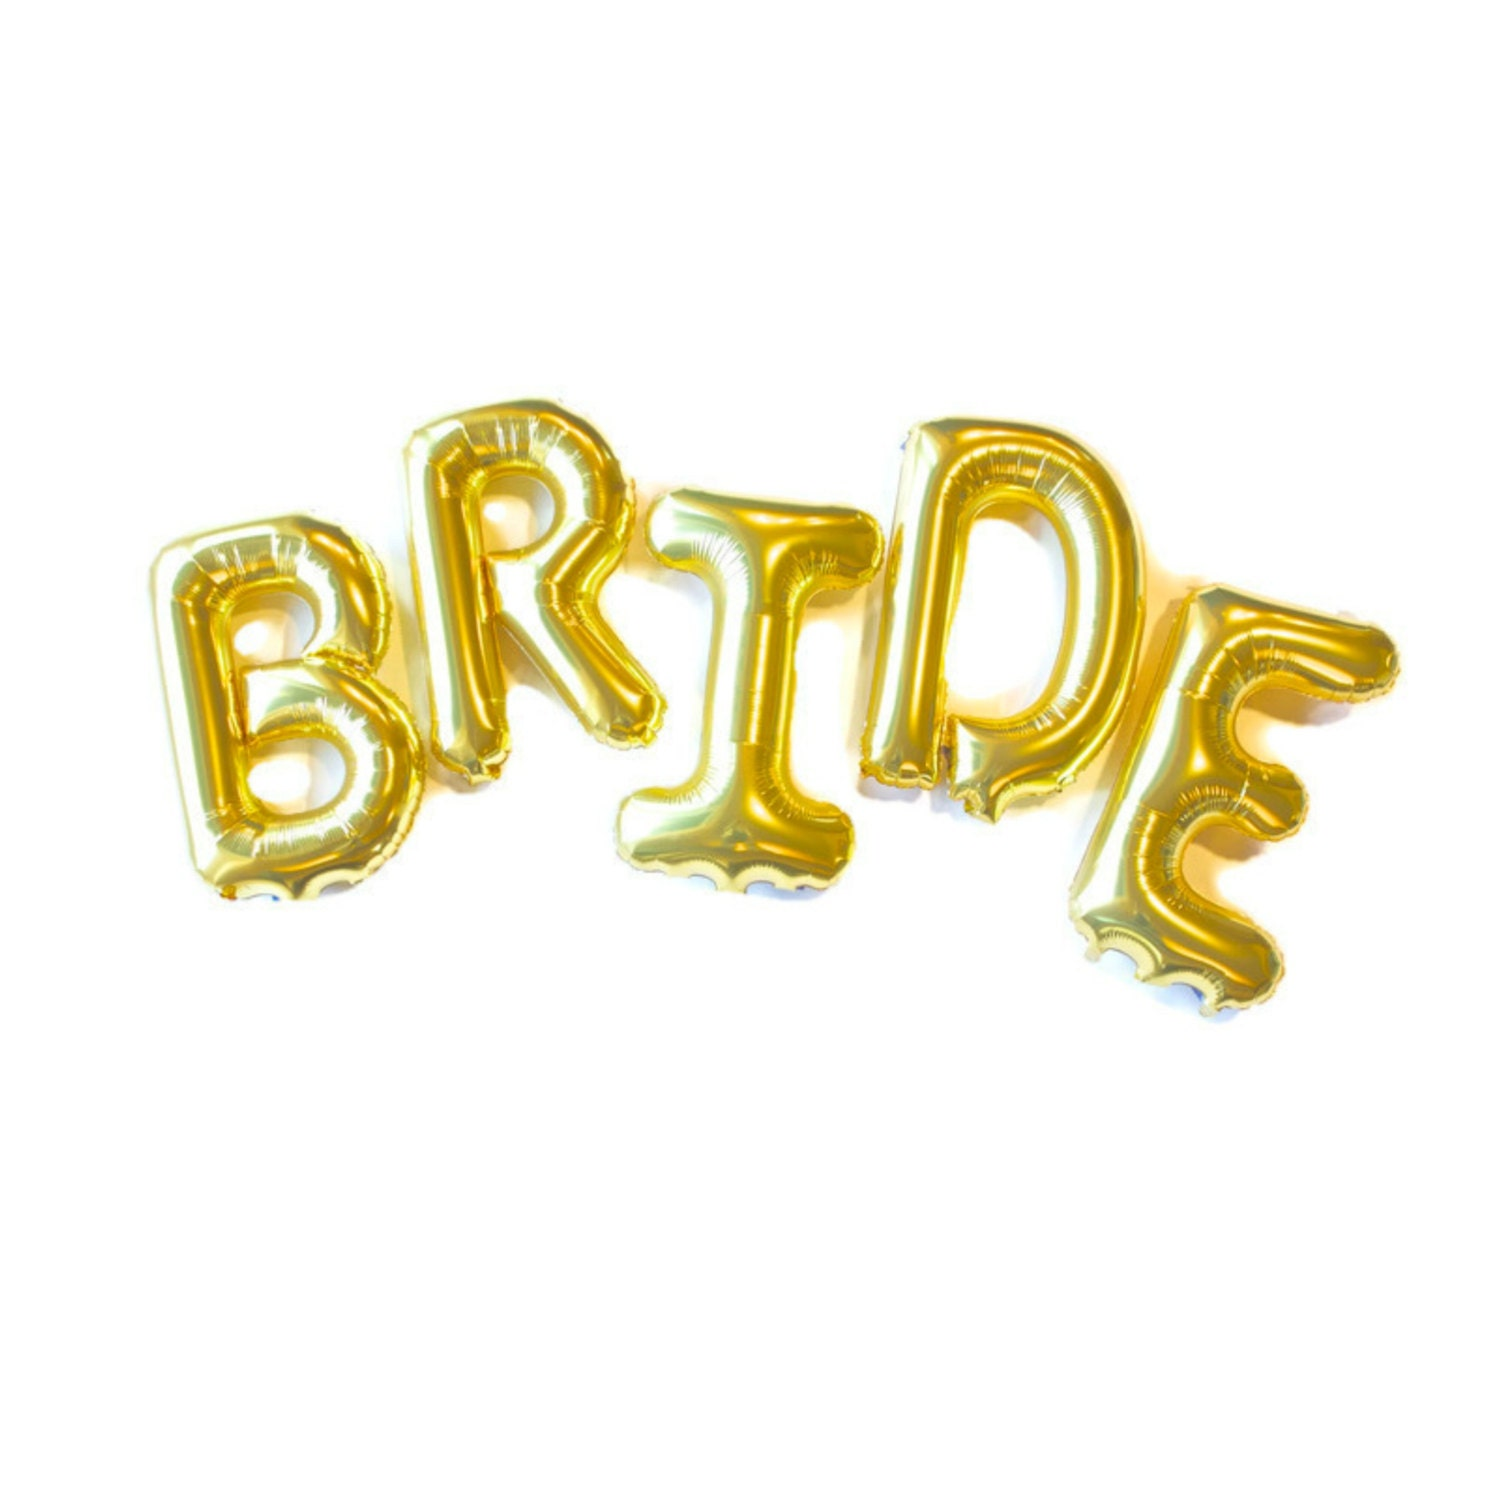 Bridal Shower Balloons BRIDE Balloon Rose Gold Or Gold Letter